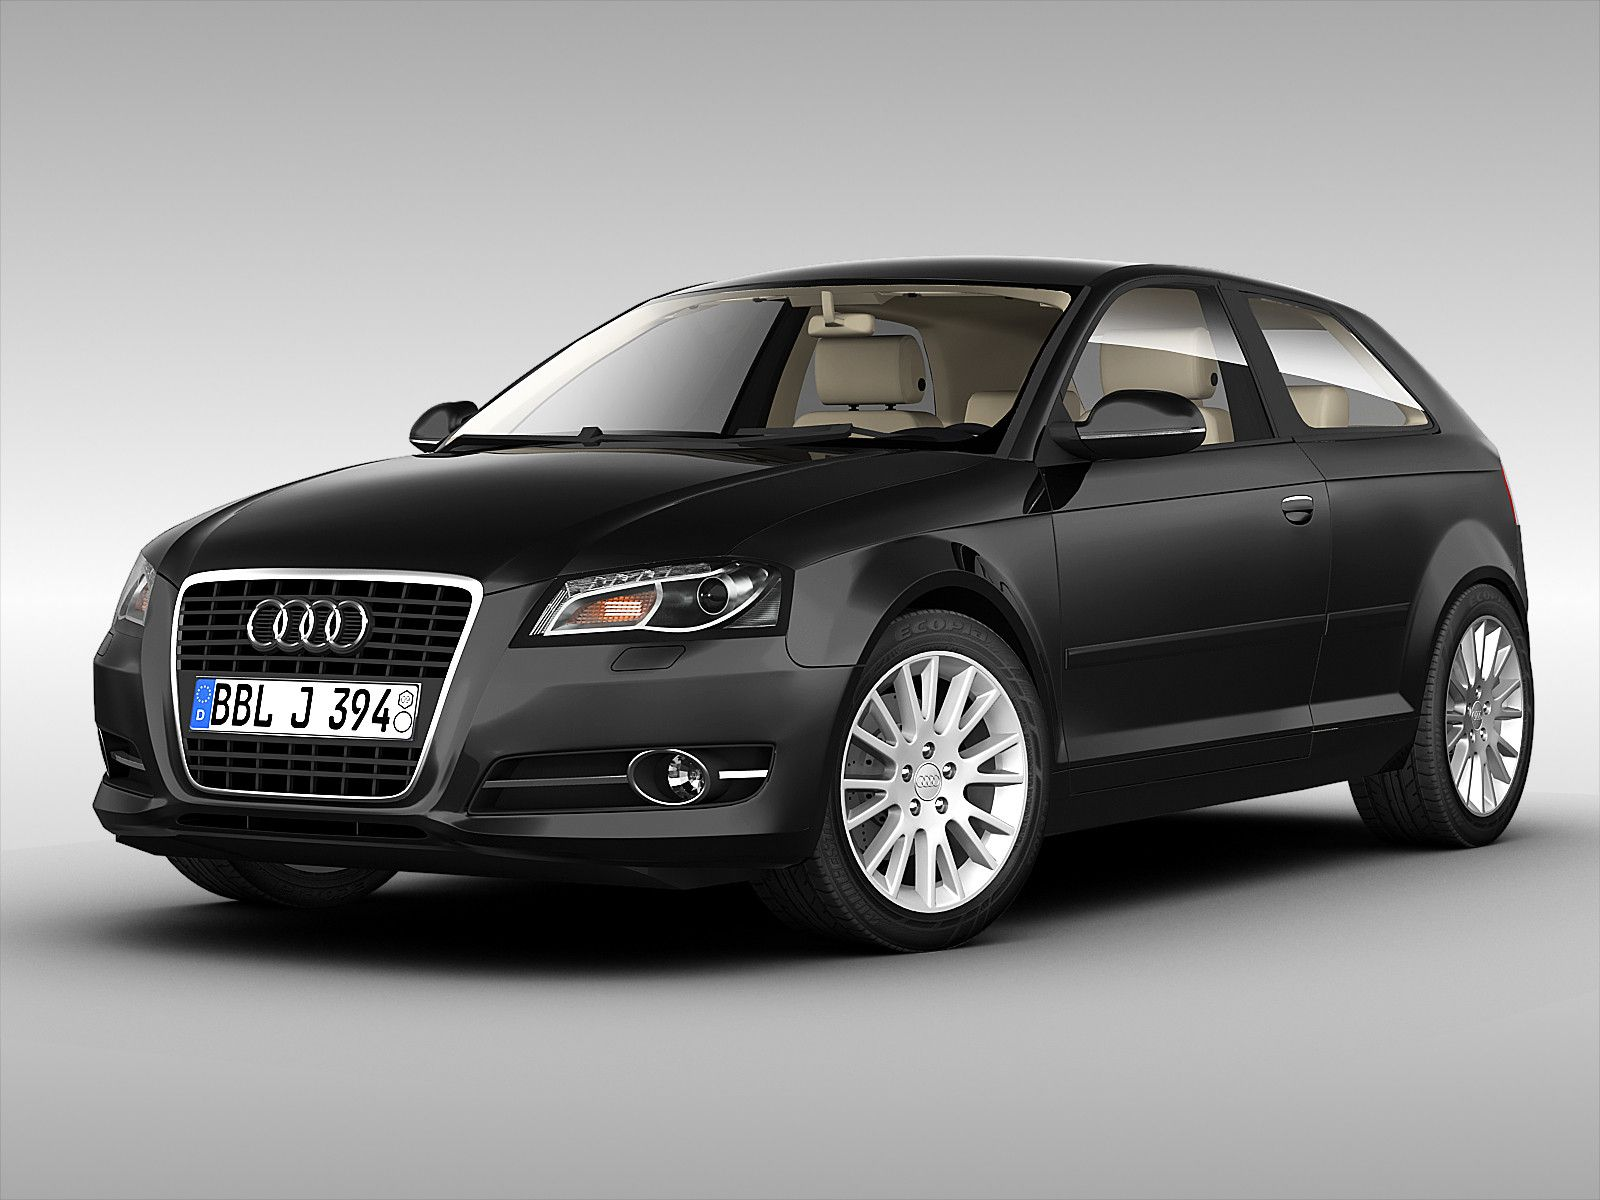 Max Audi Car D Model DModeling Pinterest - Audi car 3d